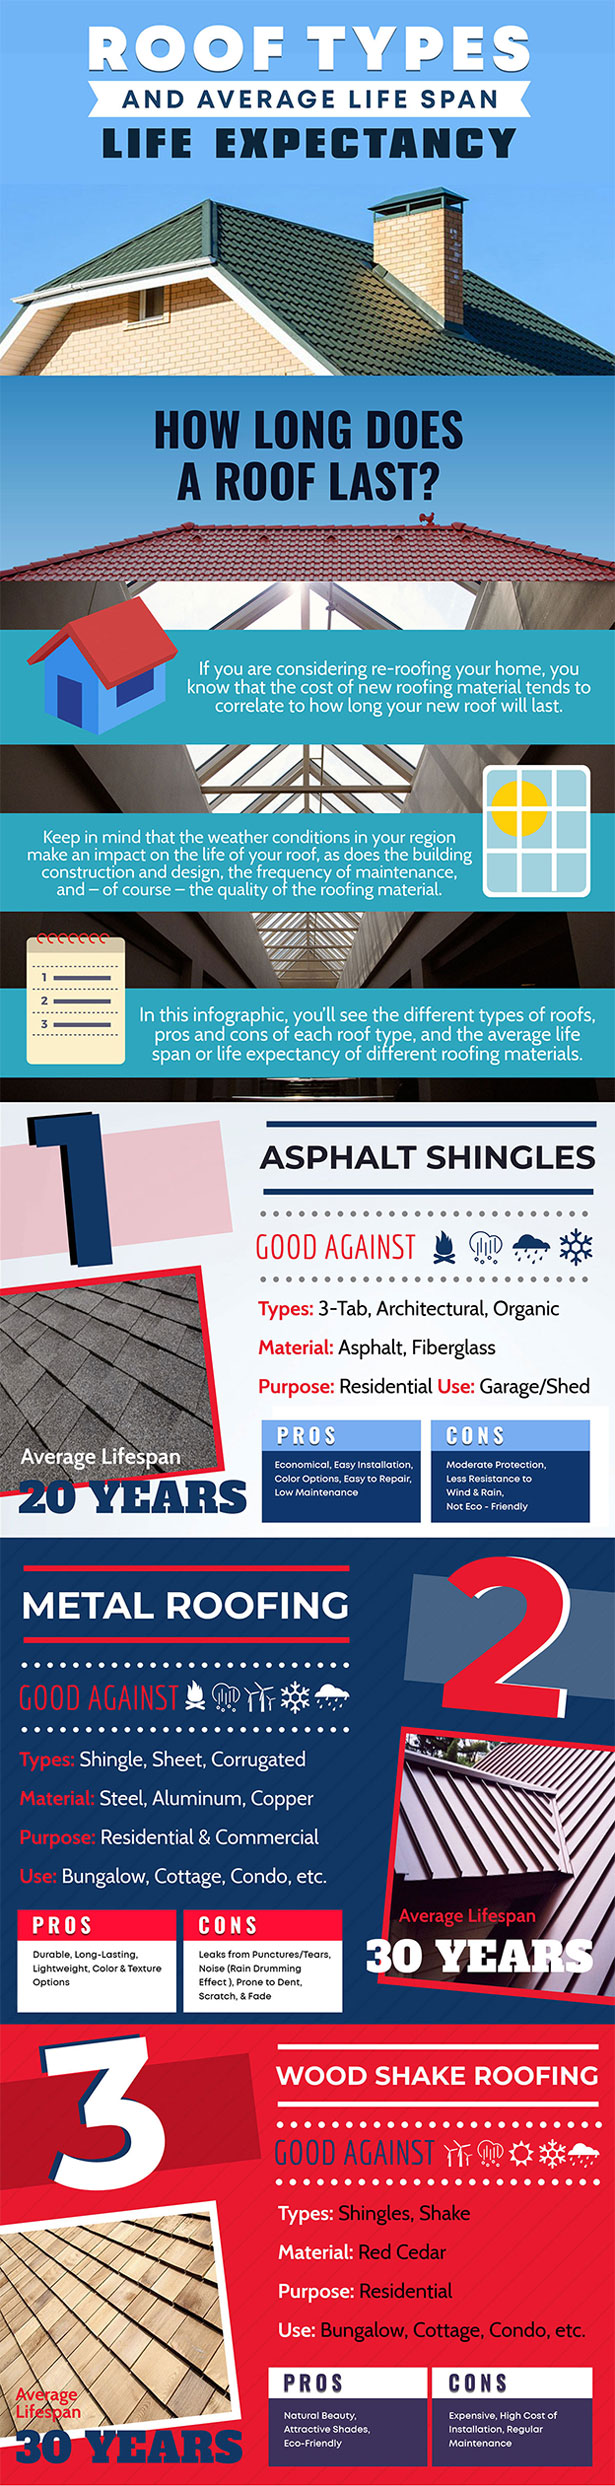 Roof types and average life span 1